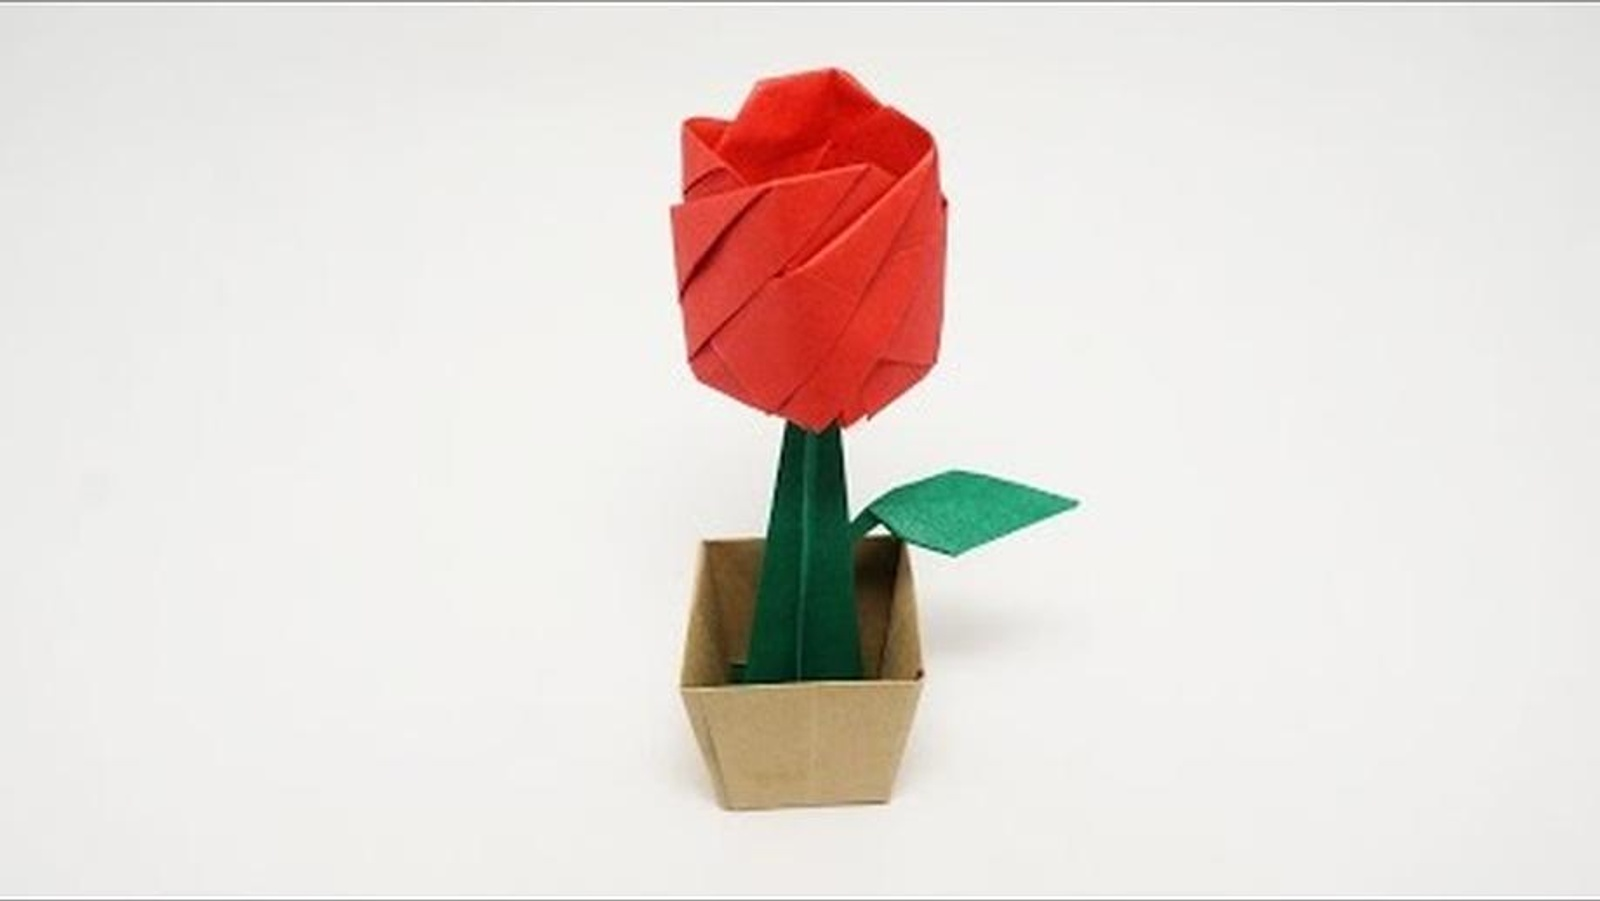 Origami Magic Rose Cube : 17 Steps (with Pictures) - Instructables | 901x1600